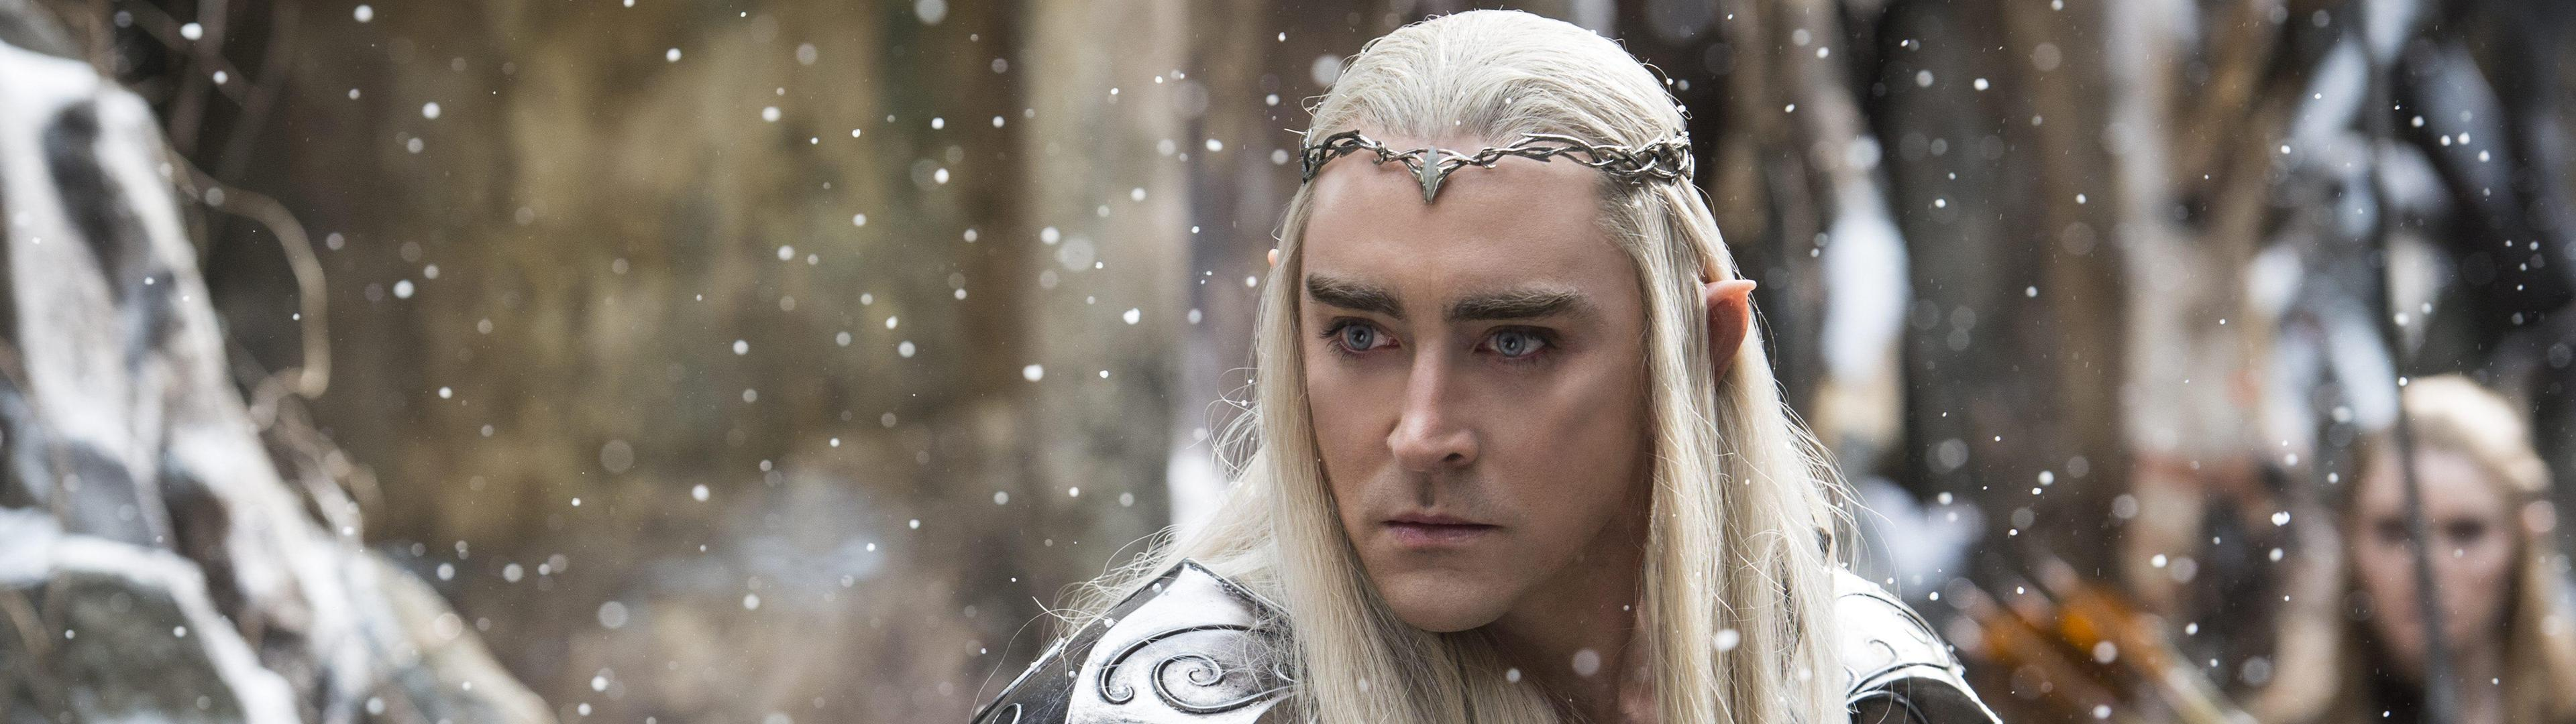 Thranduil, the Elf king.jpg